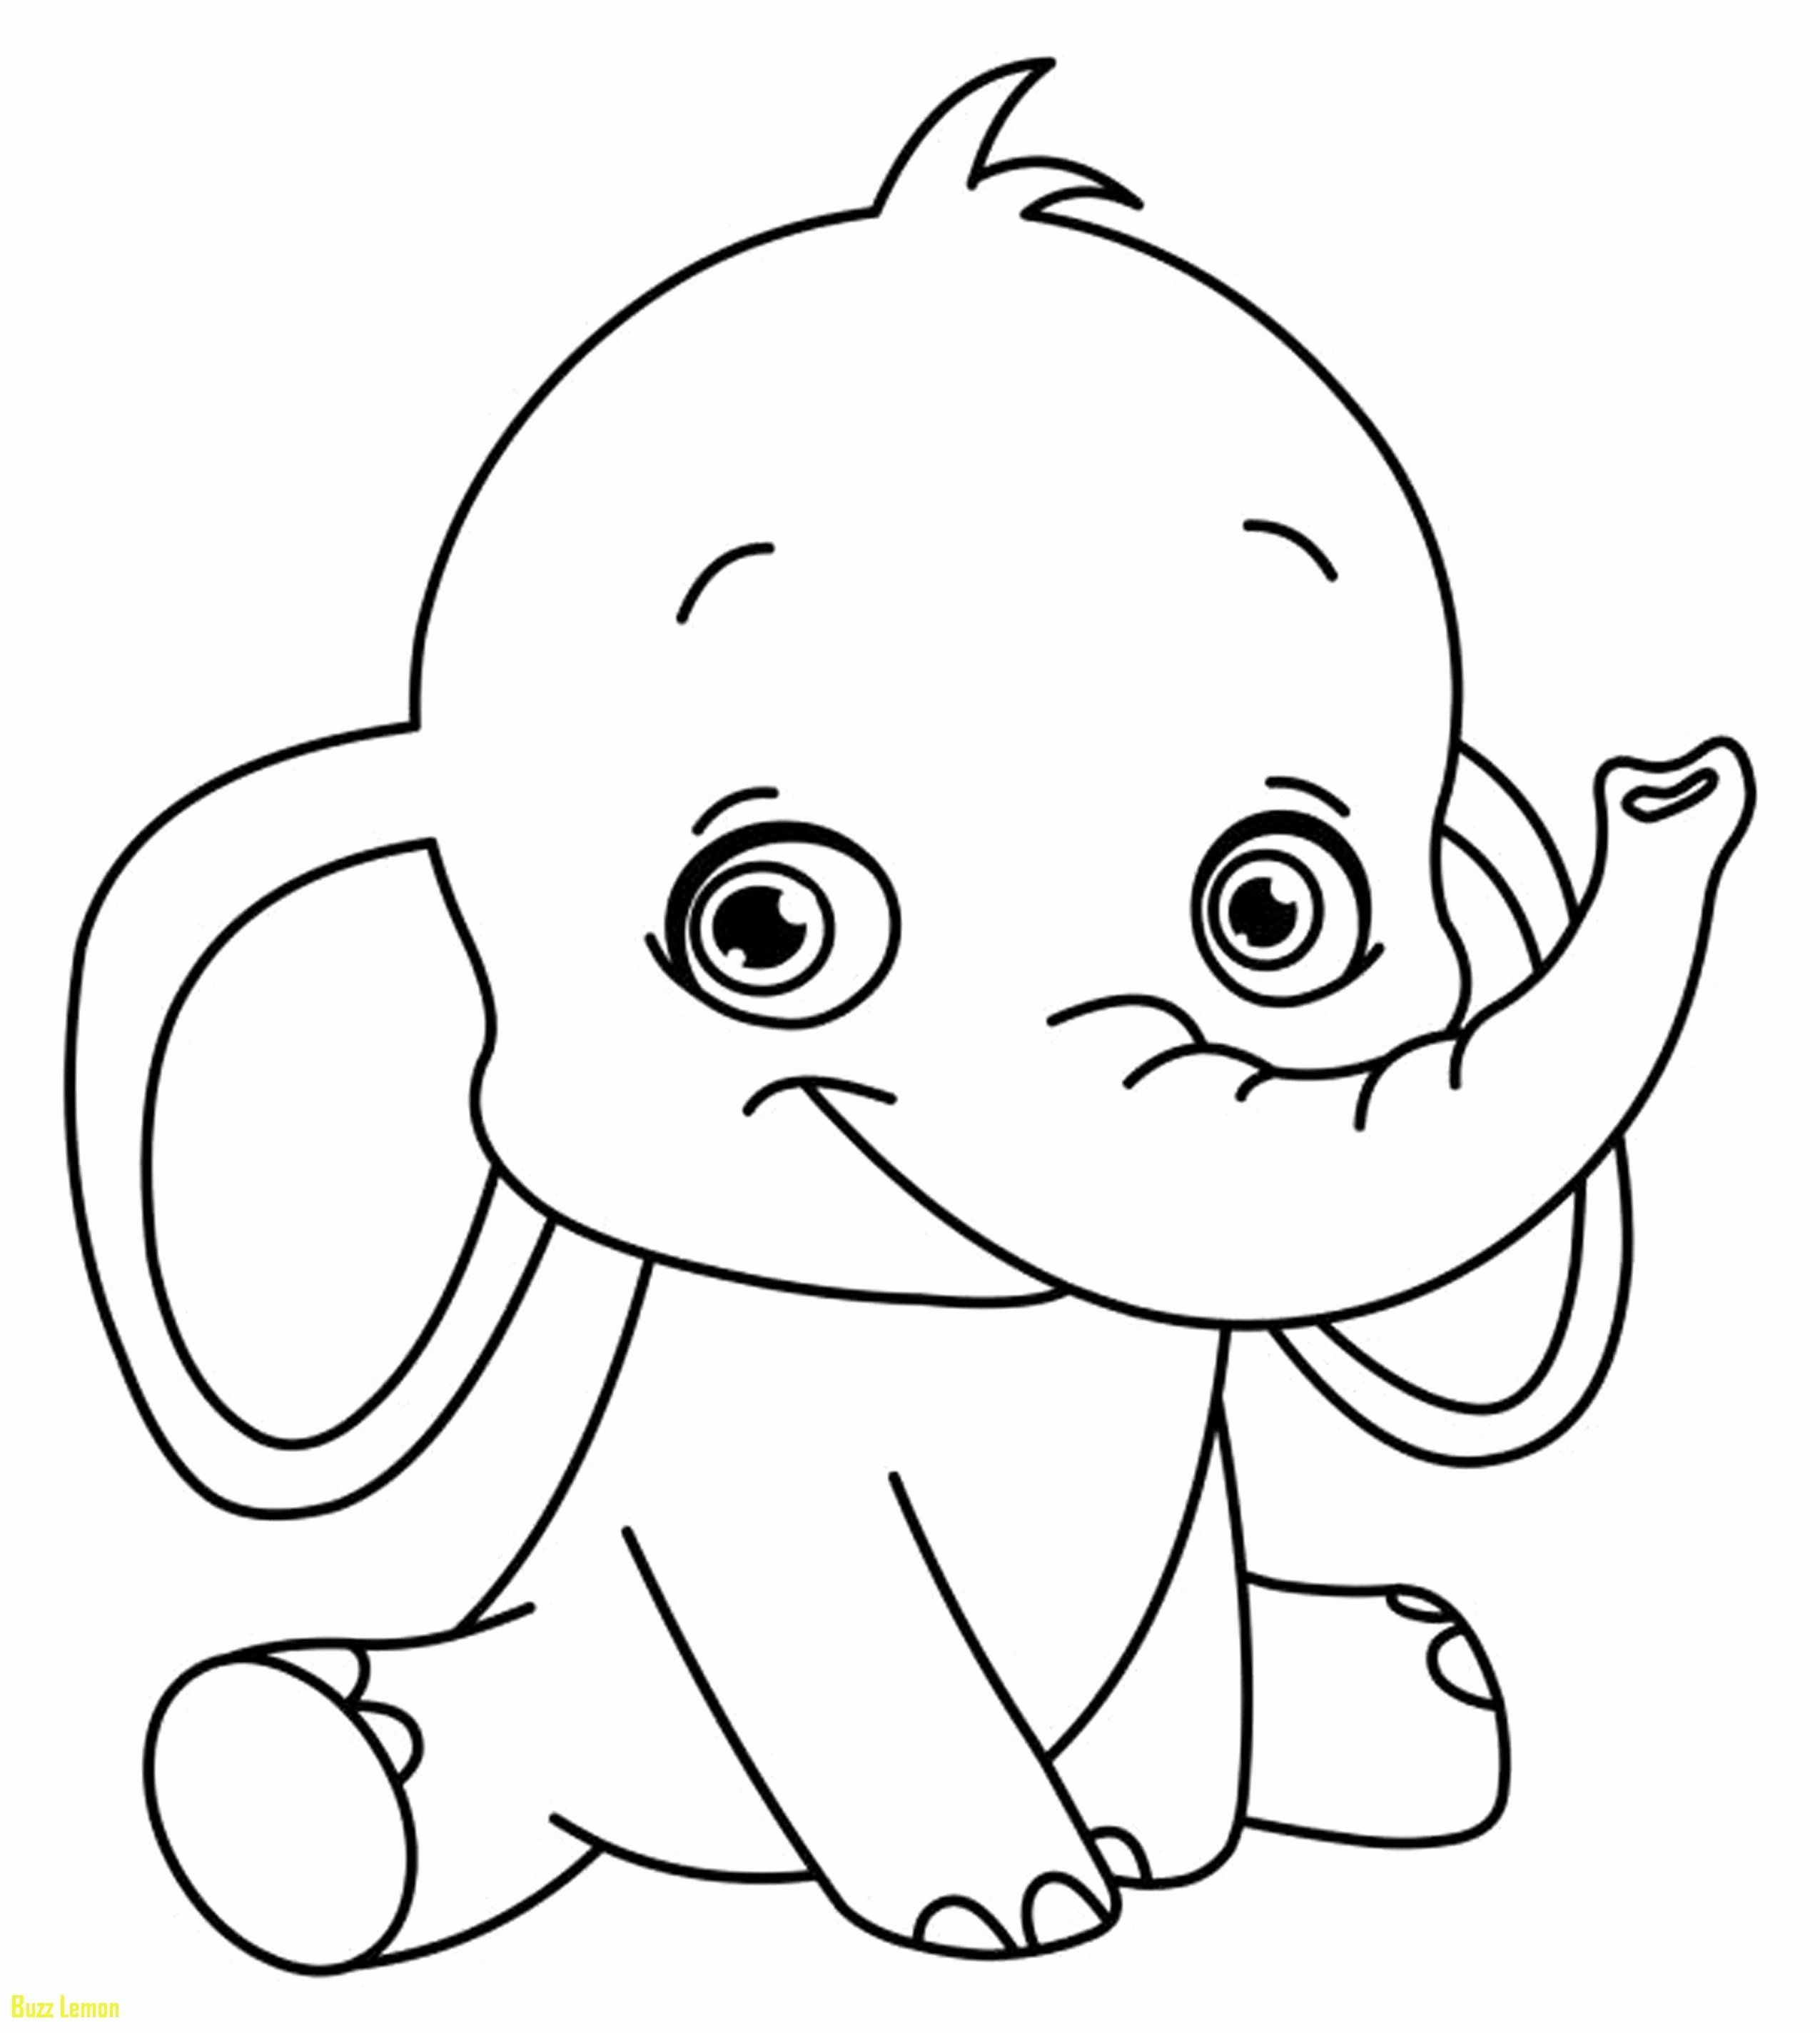 Vegetable Coloring Pages Pdf | Elephant coloring page ...